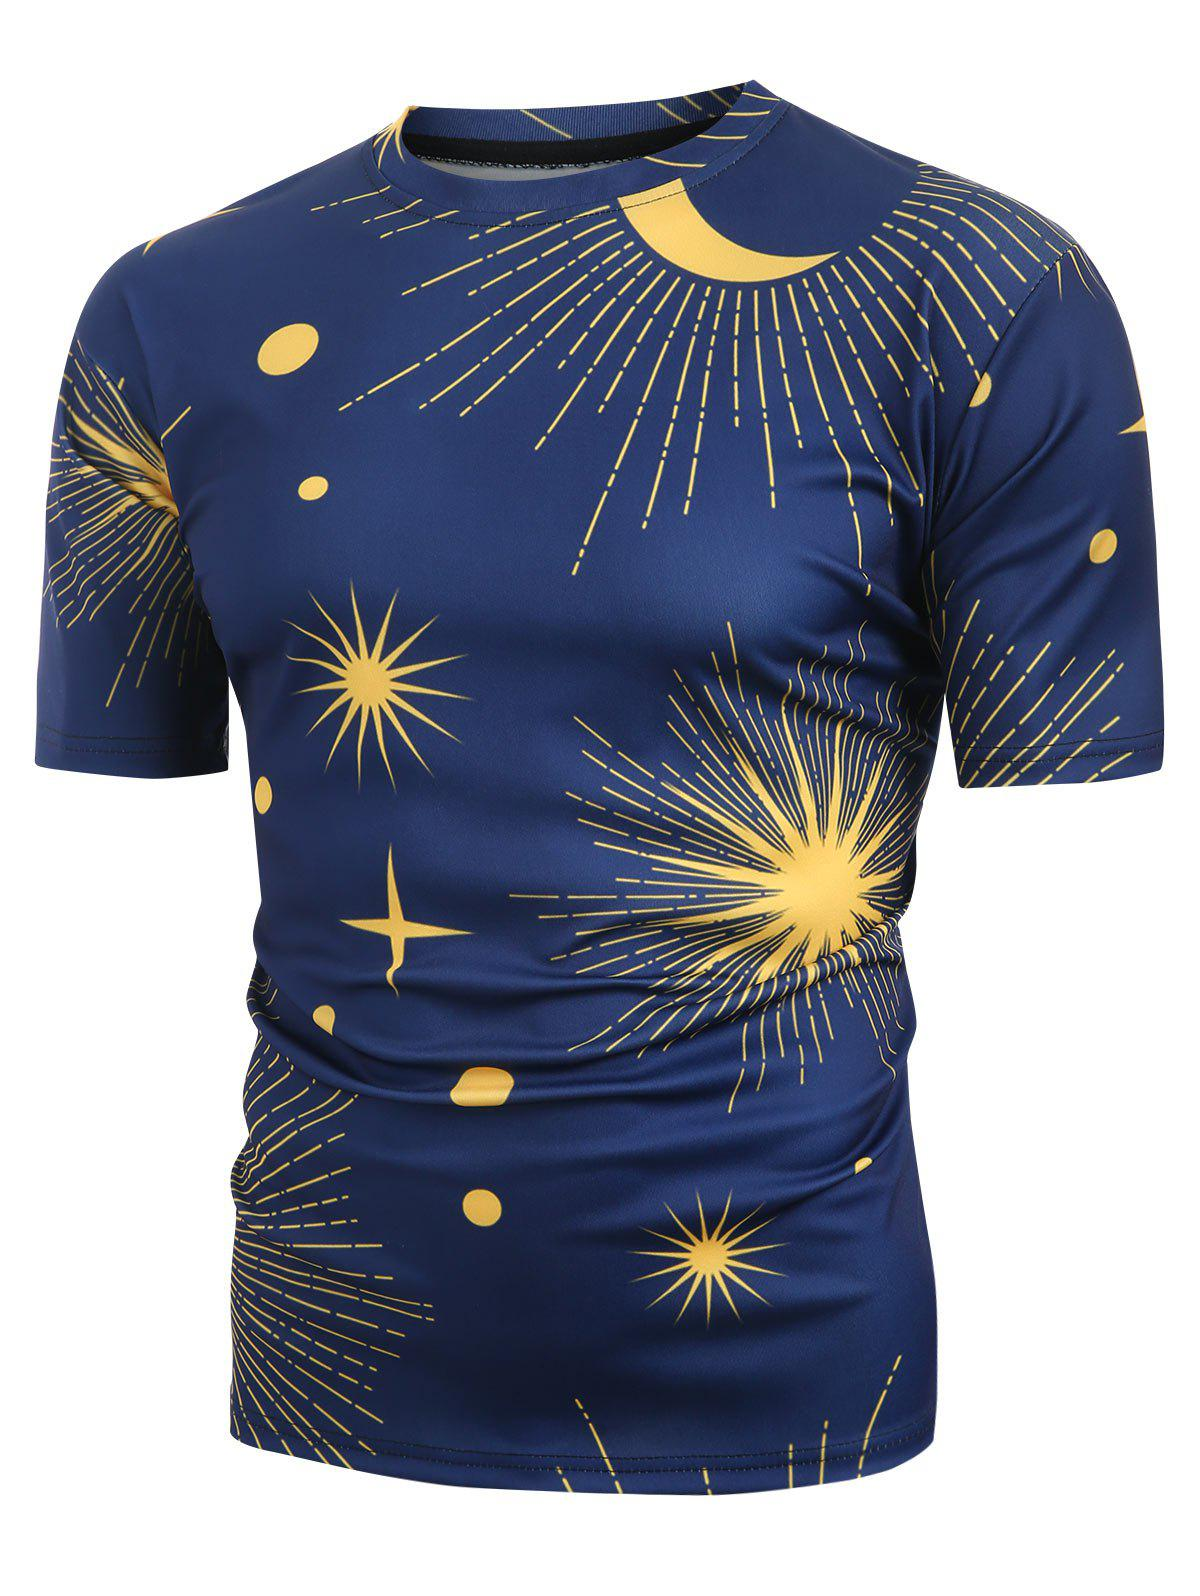 Sun and Moon Printed Short Sleeves T-shirt - CADETBLUE L